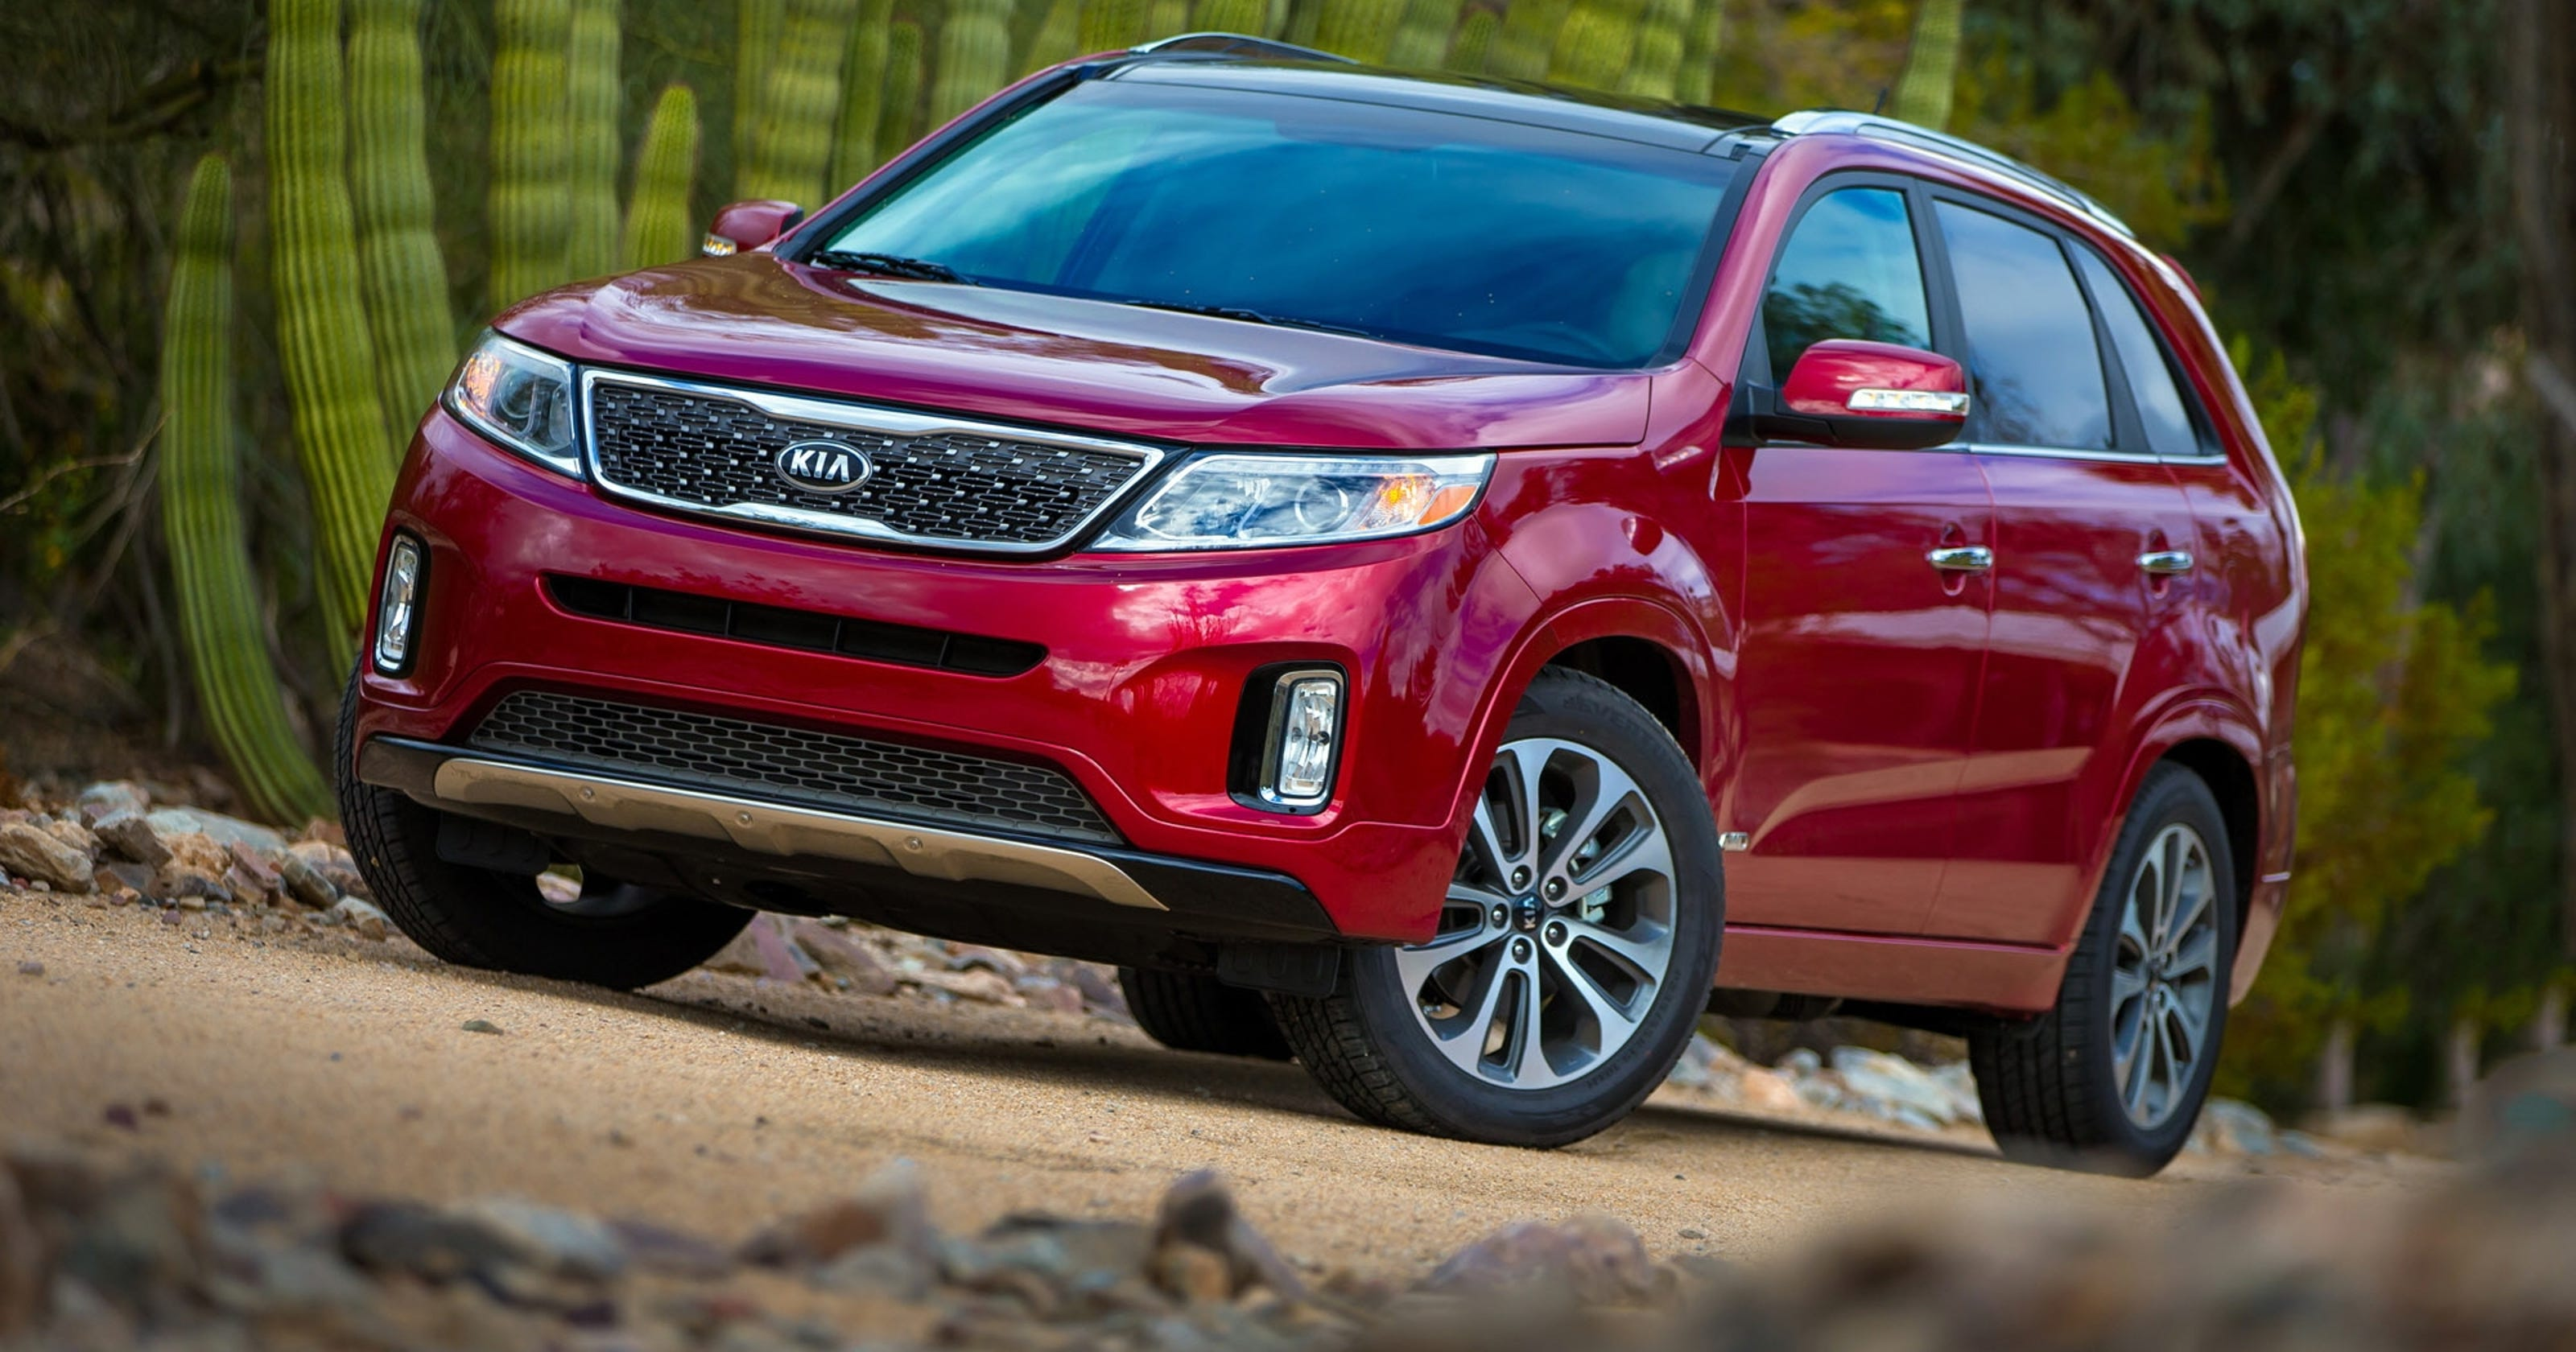 speed cars price dr sxldriven kia top driven sxl sorento